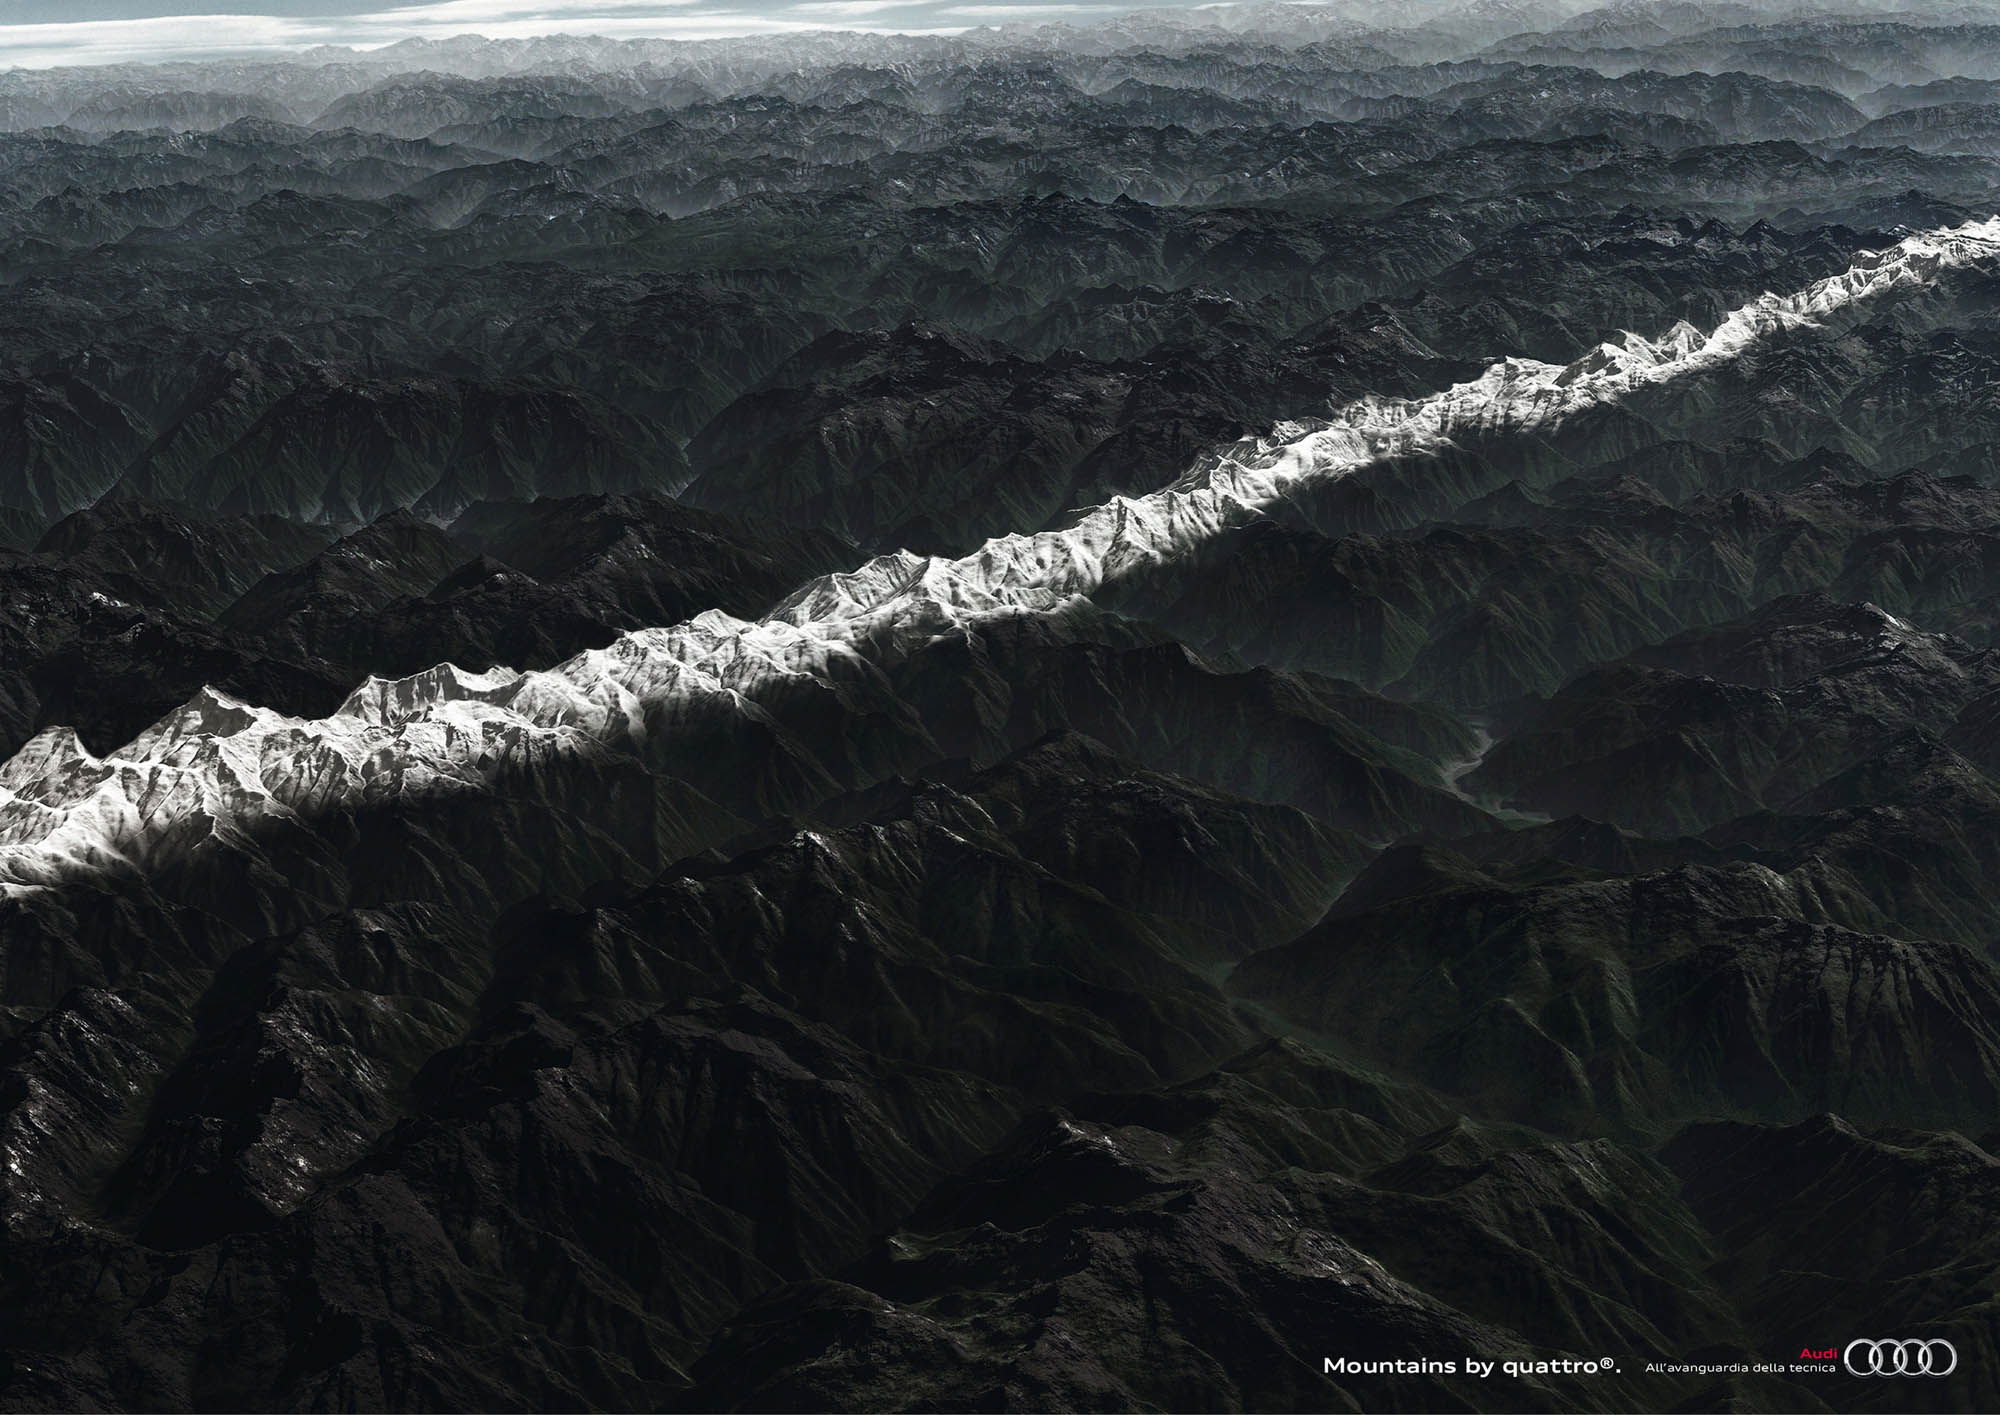 Audi Quattro: Mountains